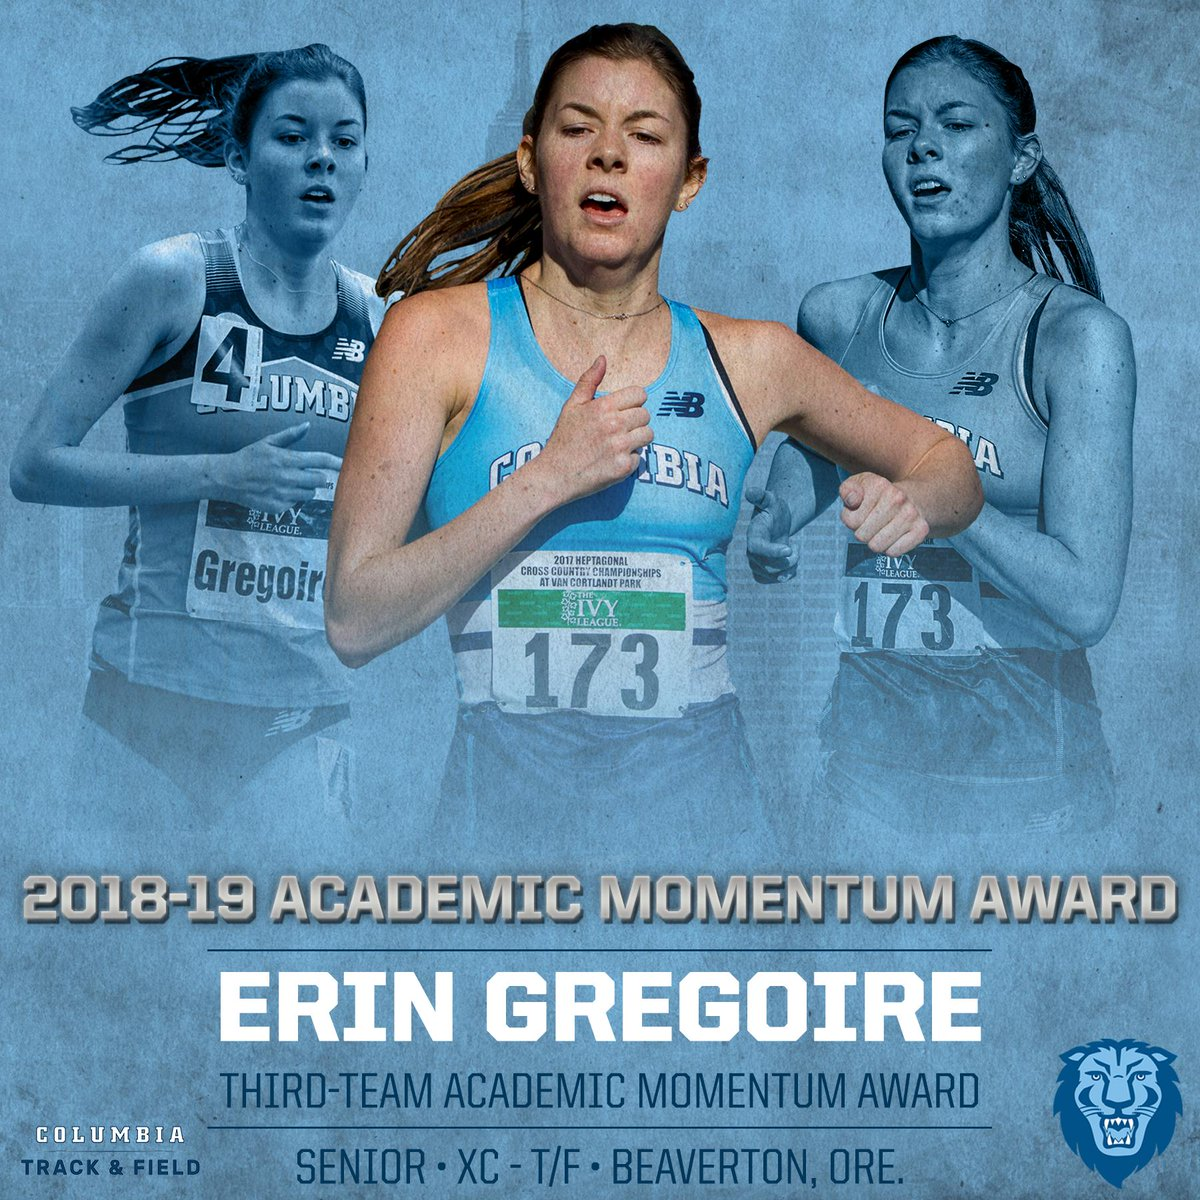 RT @ColumbiaXCTF: Erin Gregoire wins on the track and in the classroom. 👏👏  #RoarLionRoar https://t.co/tESZCRVBZ0